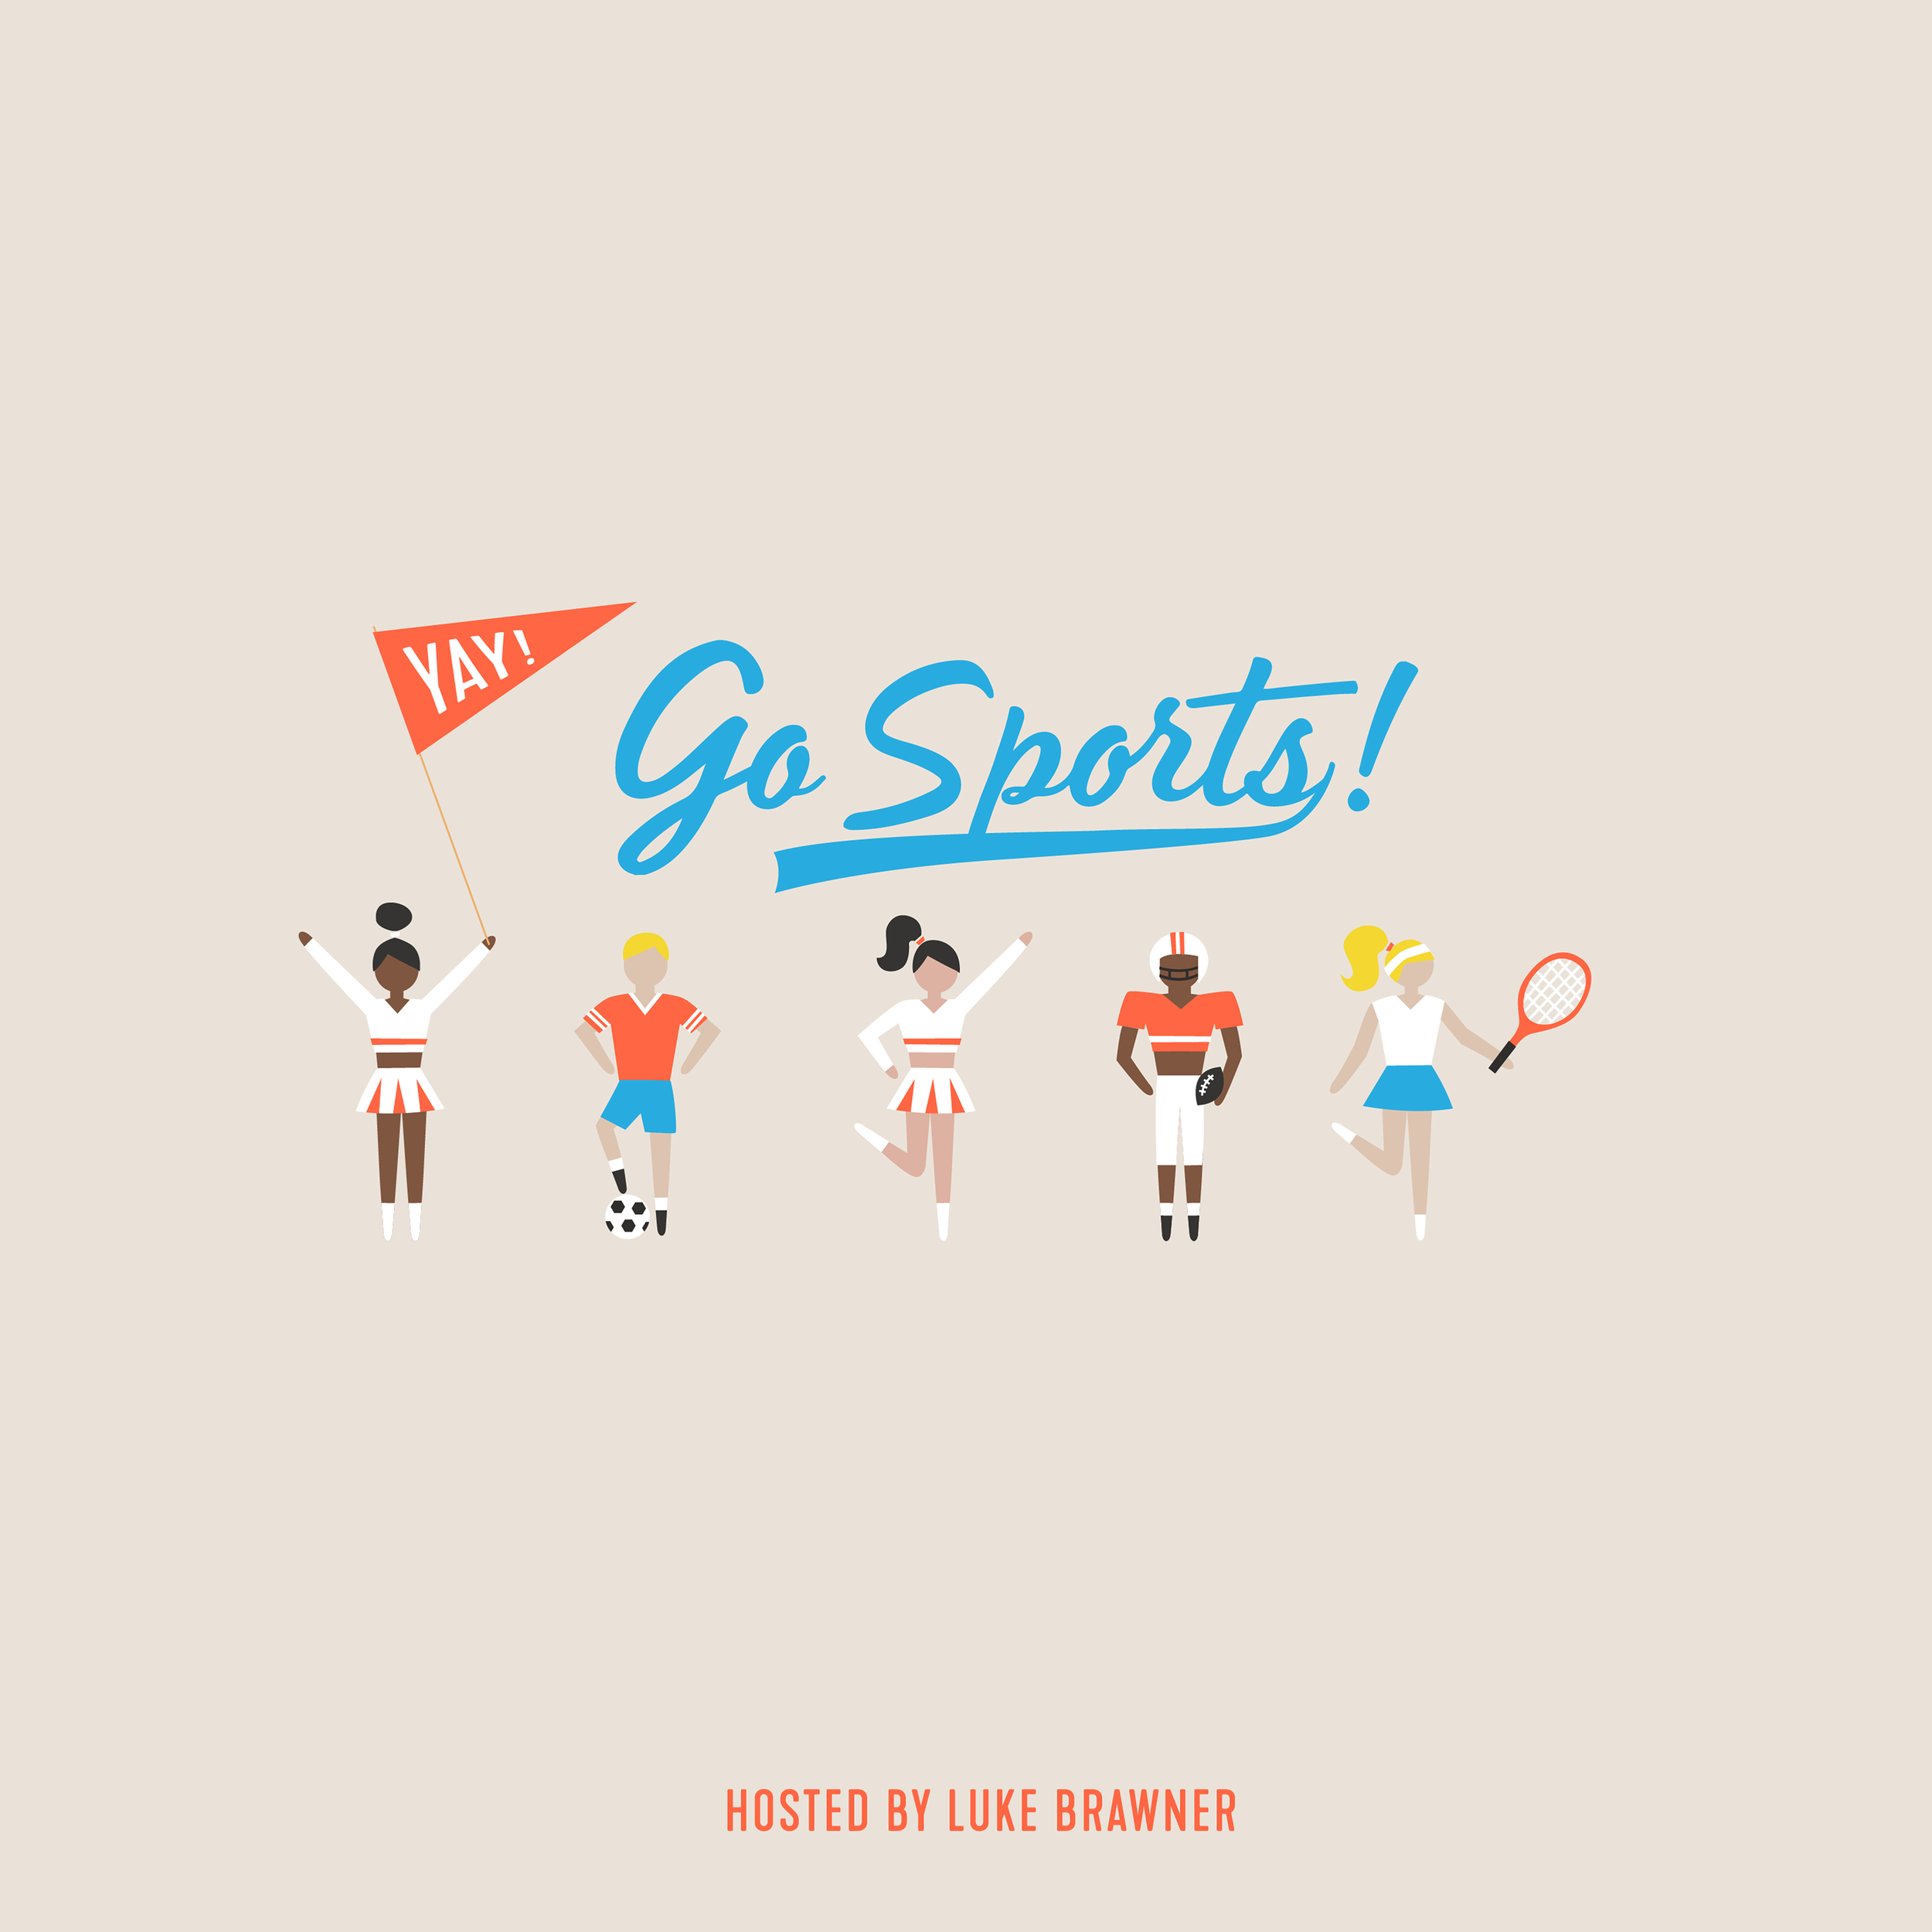 Yay! go, sports! - A remedial sports show of sorts in which sports fanatics explain sports to host Luke Brawner one question at a time. Think of it as sports talk for the B-Team.